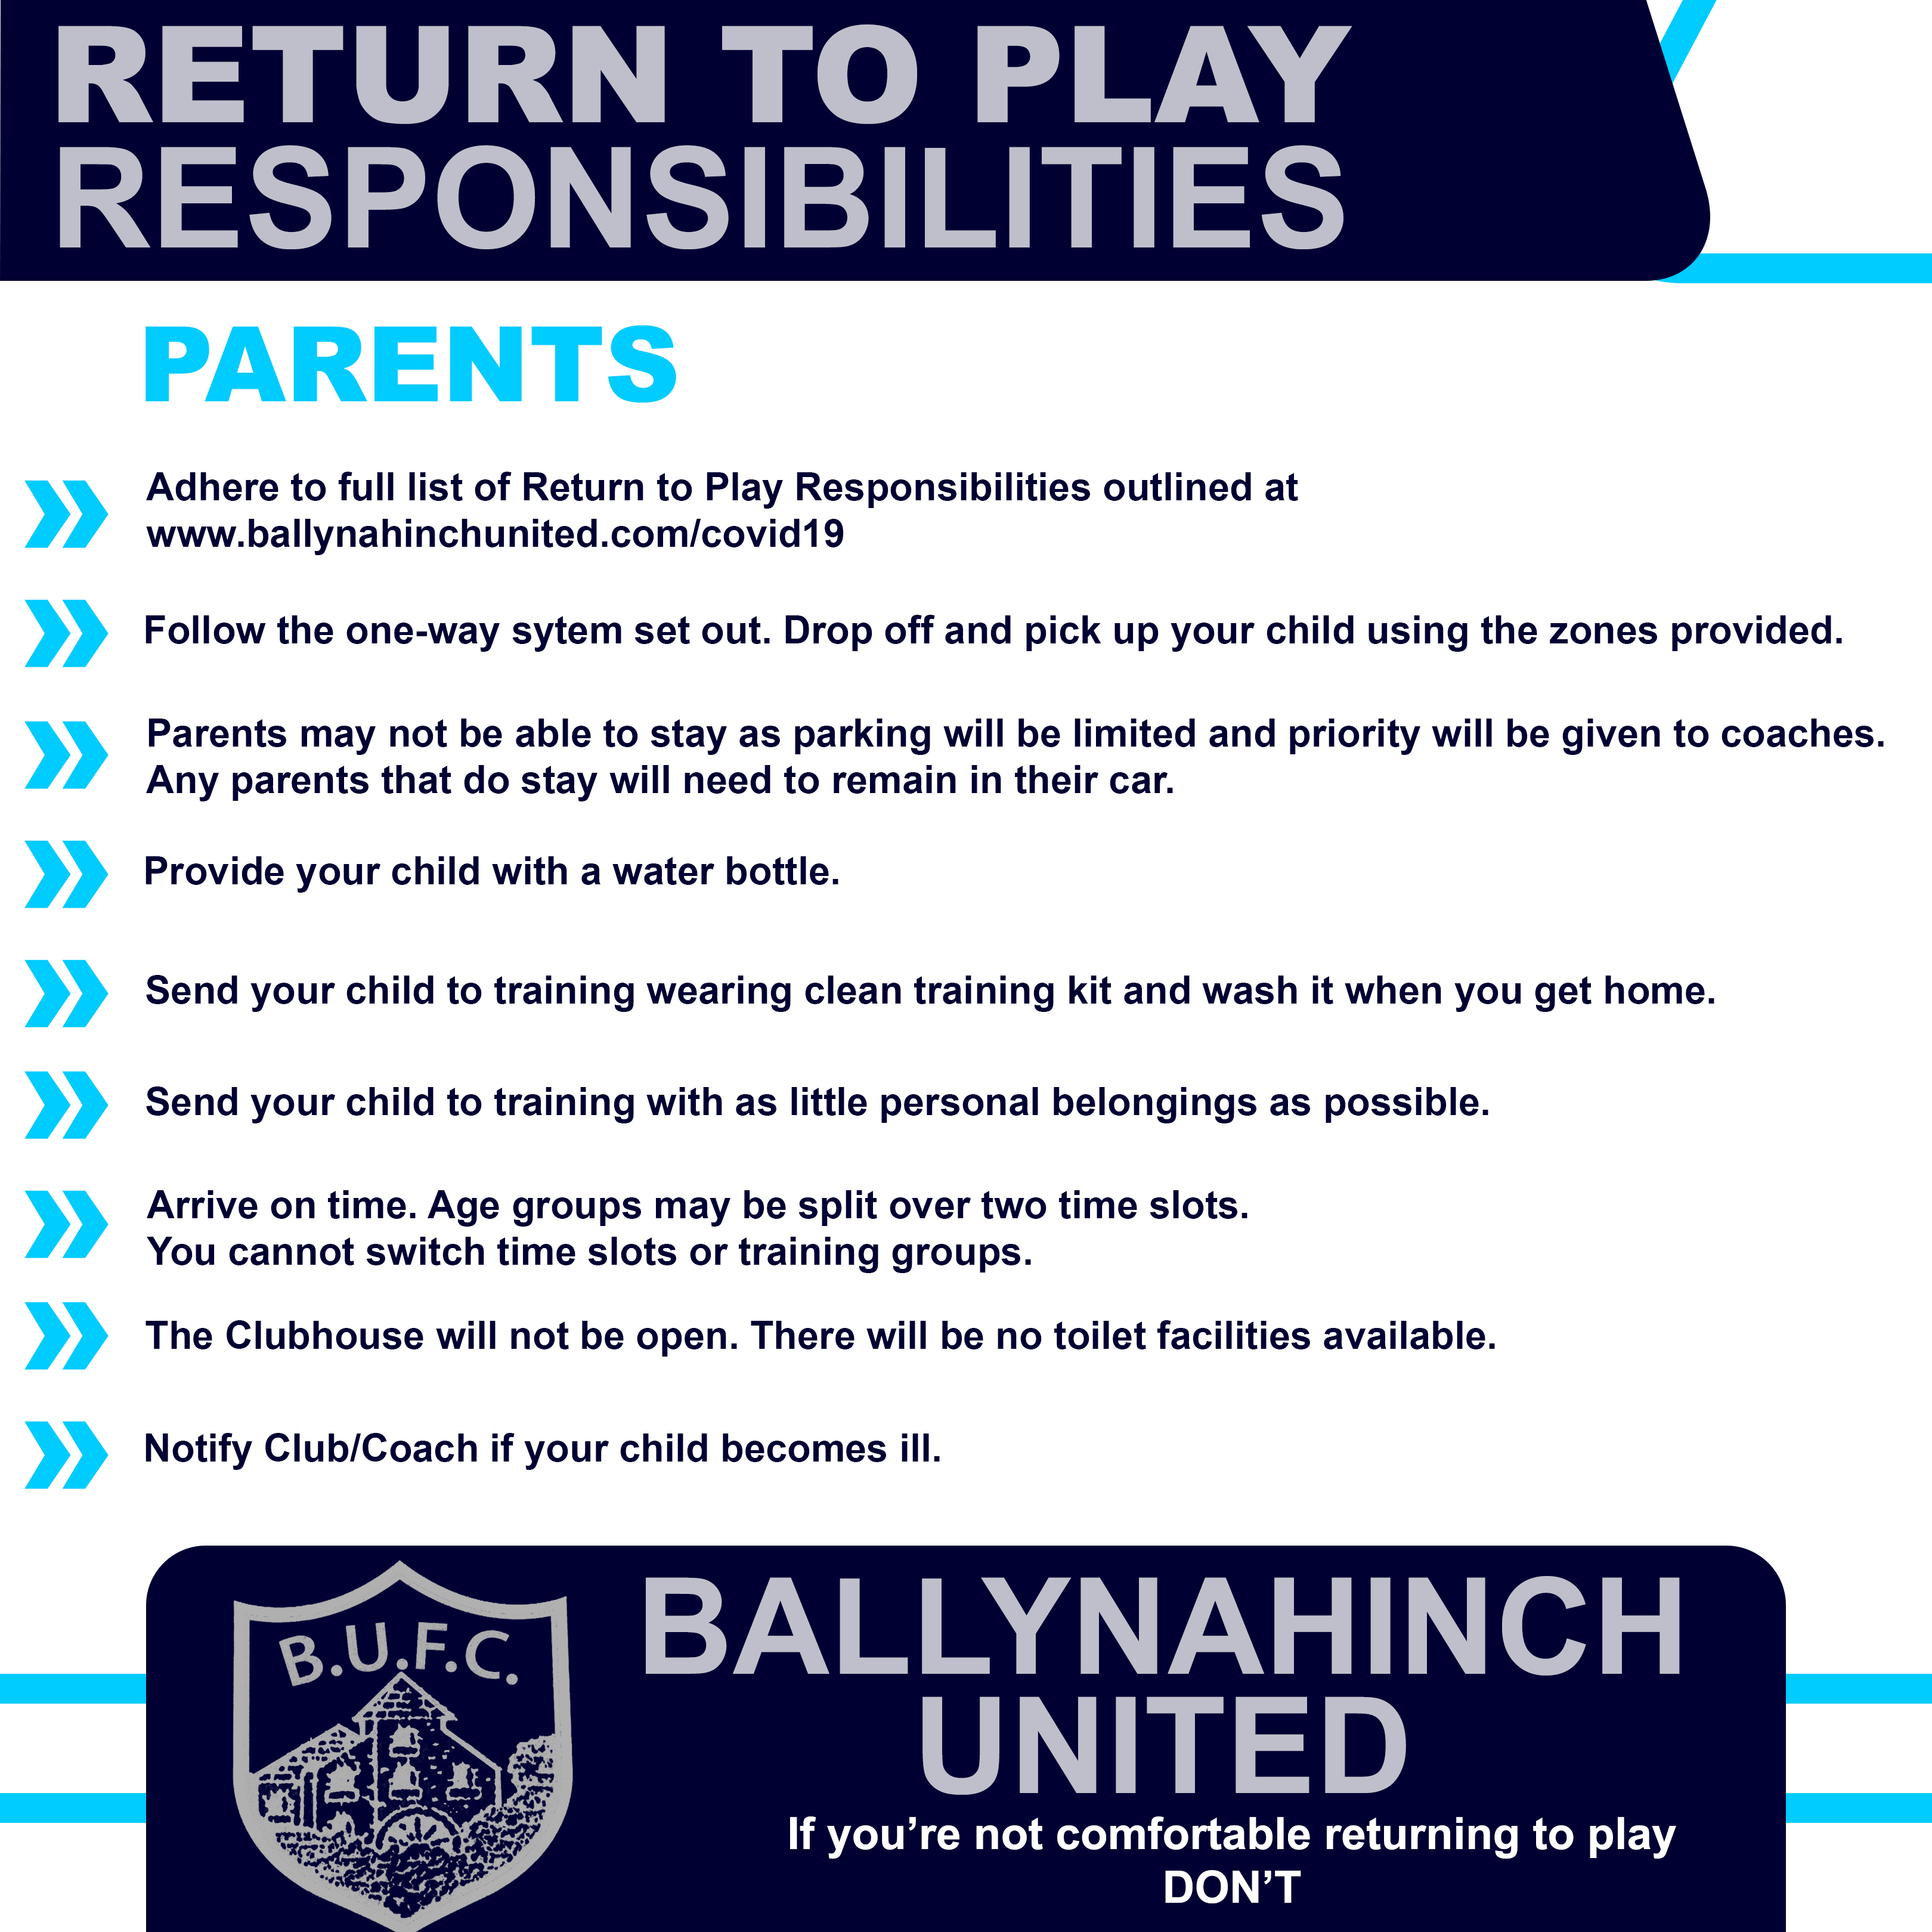 Return to Play Responsibilities for Parents